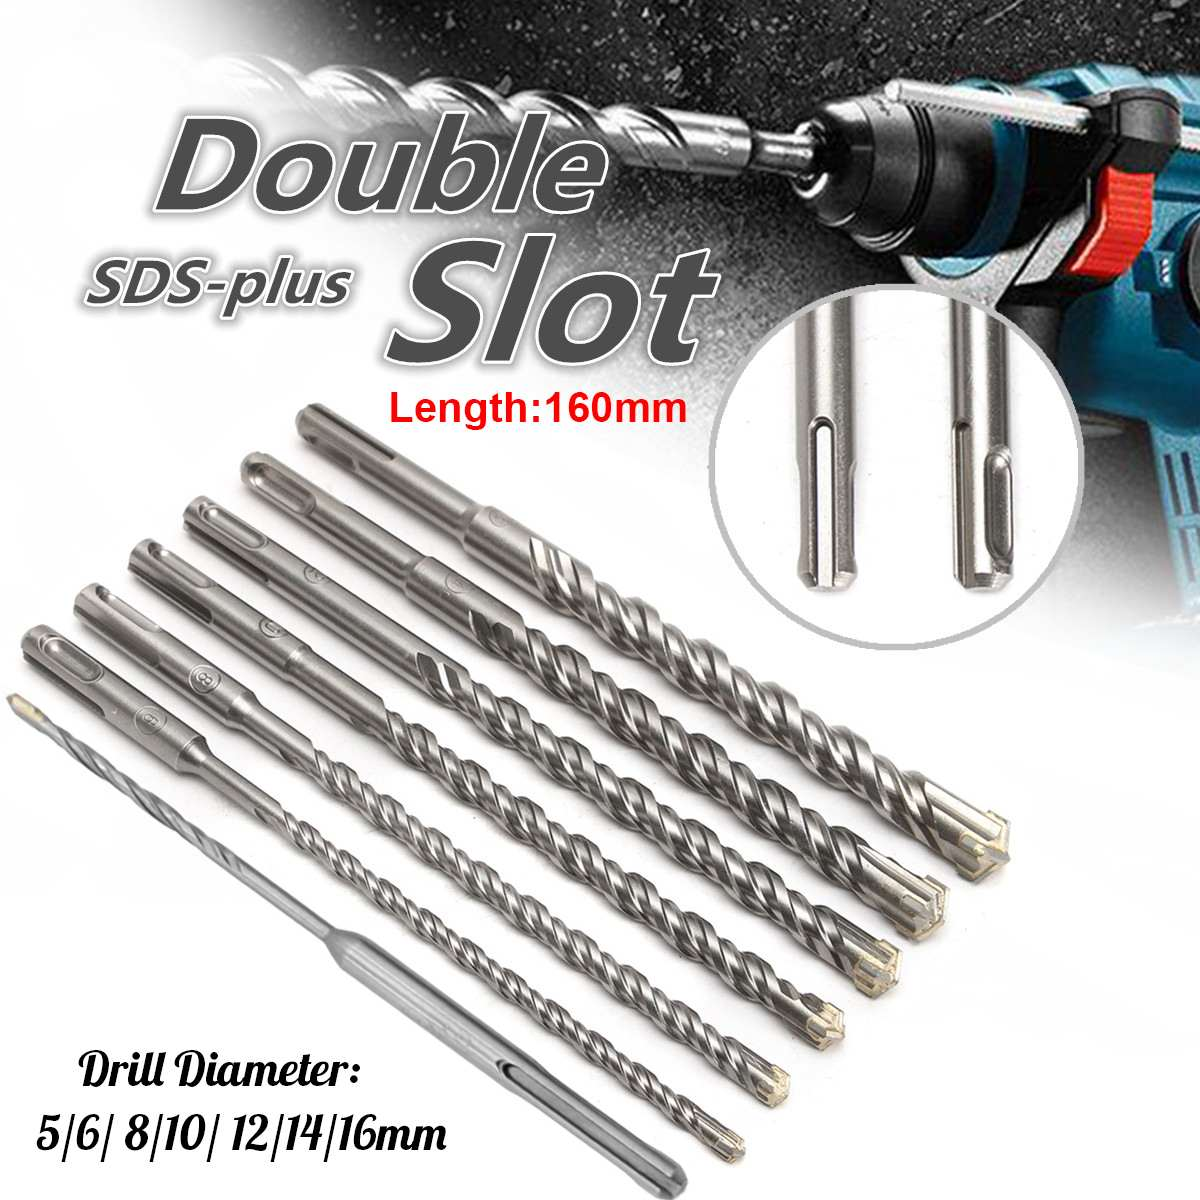 160mm Concrete Drill Bit Double SDS Plus Slot Masonry Hammer Head Tool 5-16mm High Speed White Steel Wrench For Electric Drills